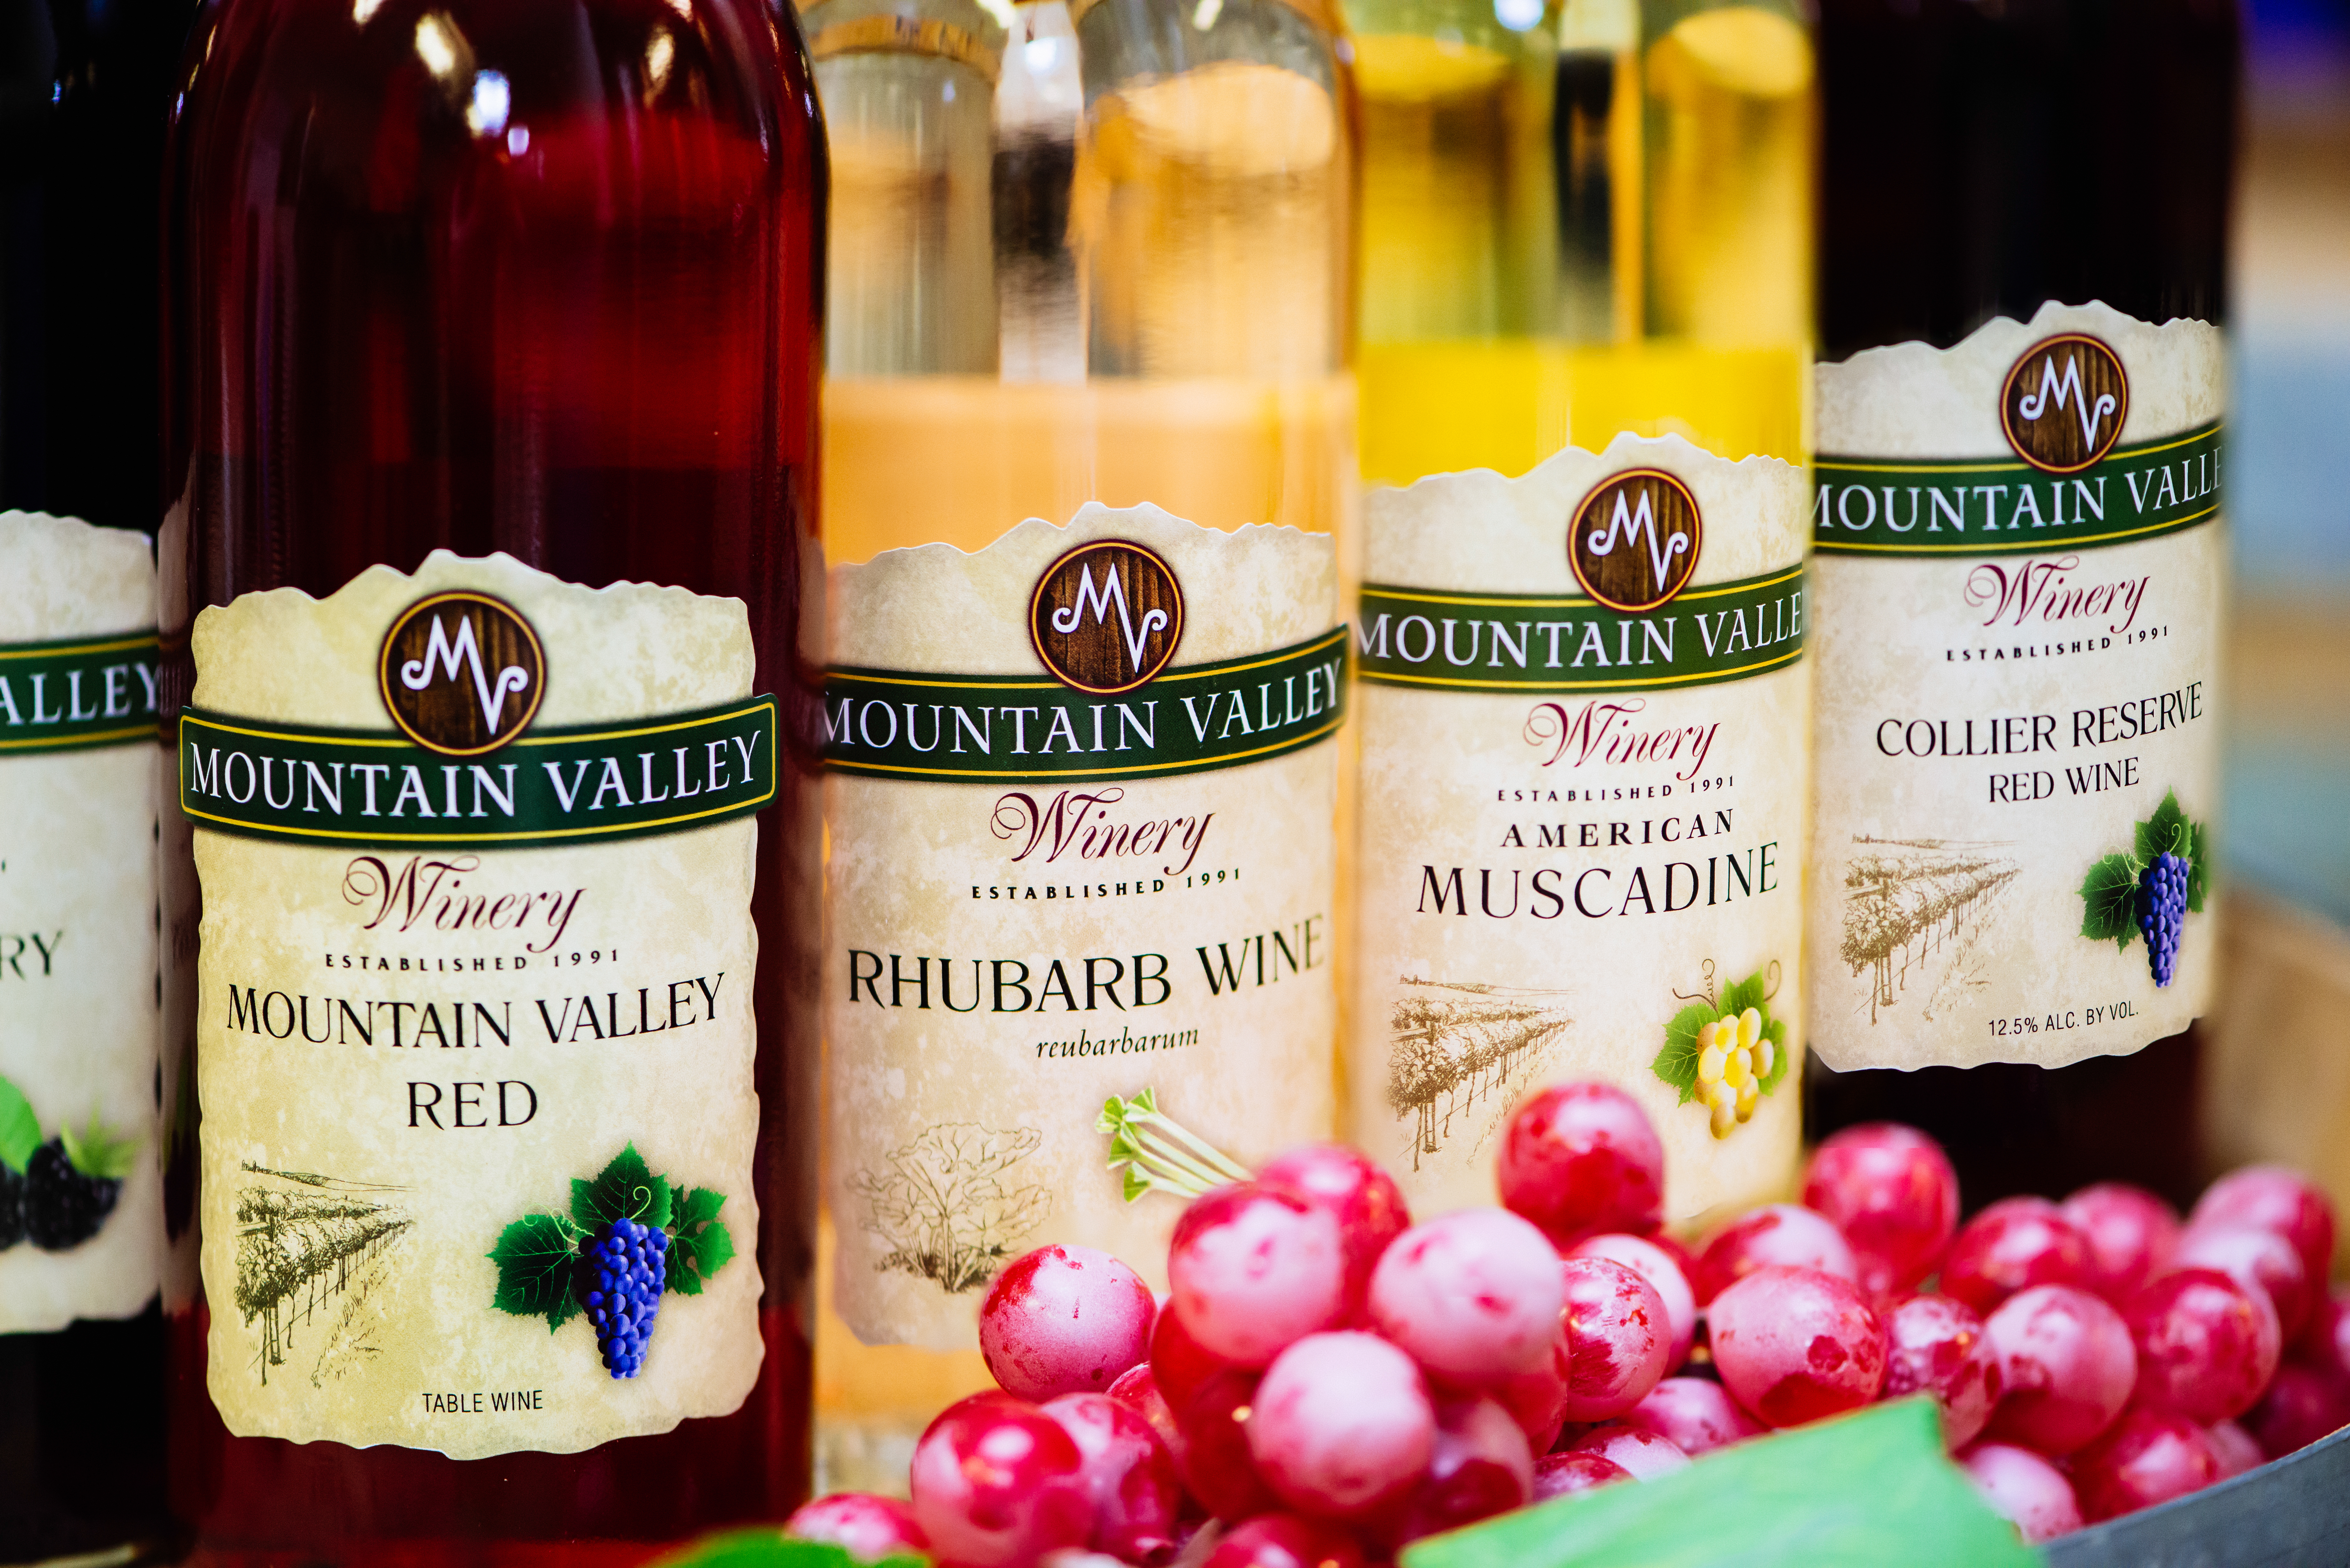 Mountain Valley Bottle Line-up